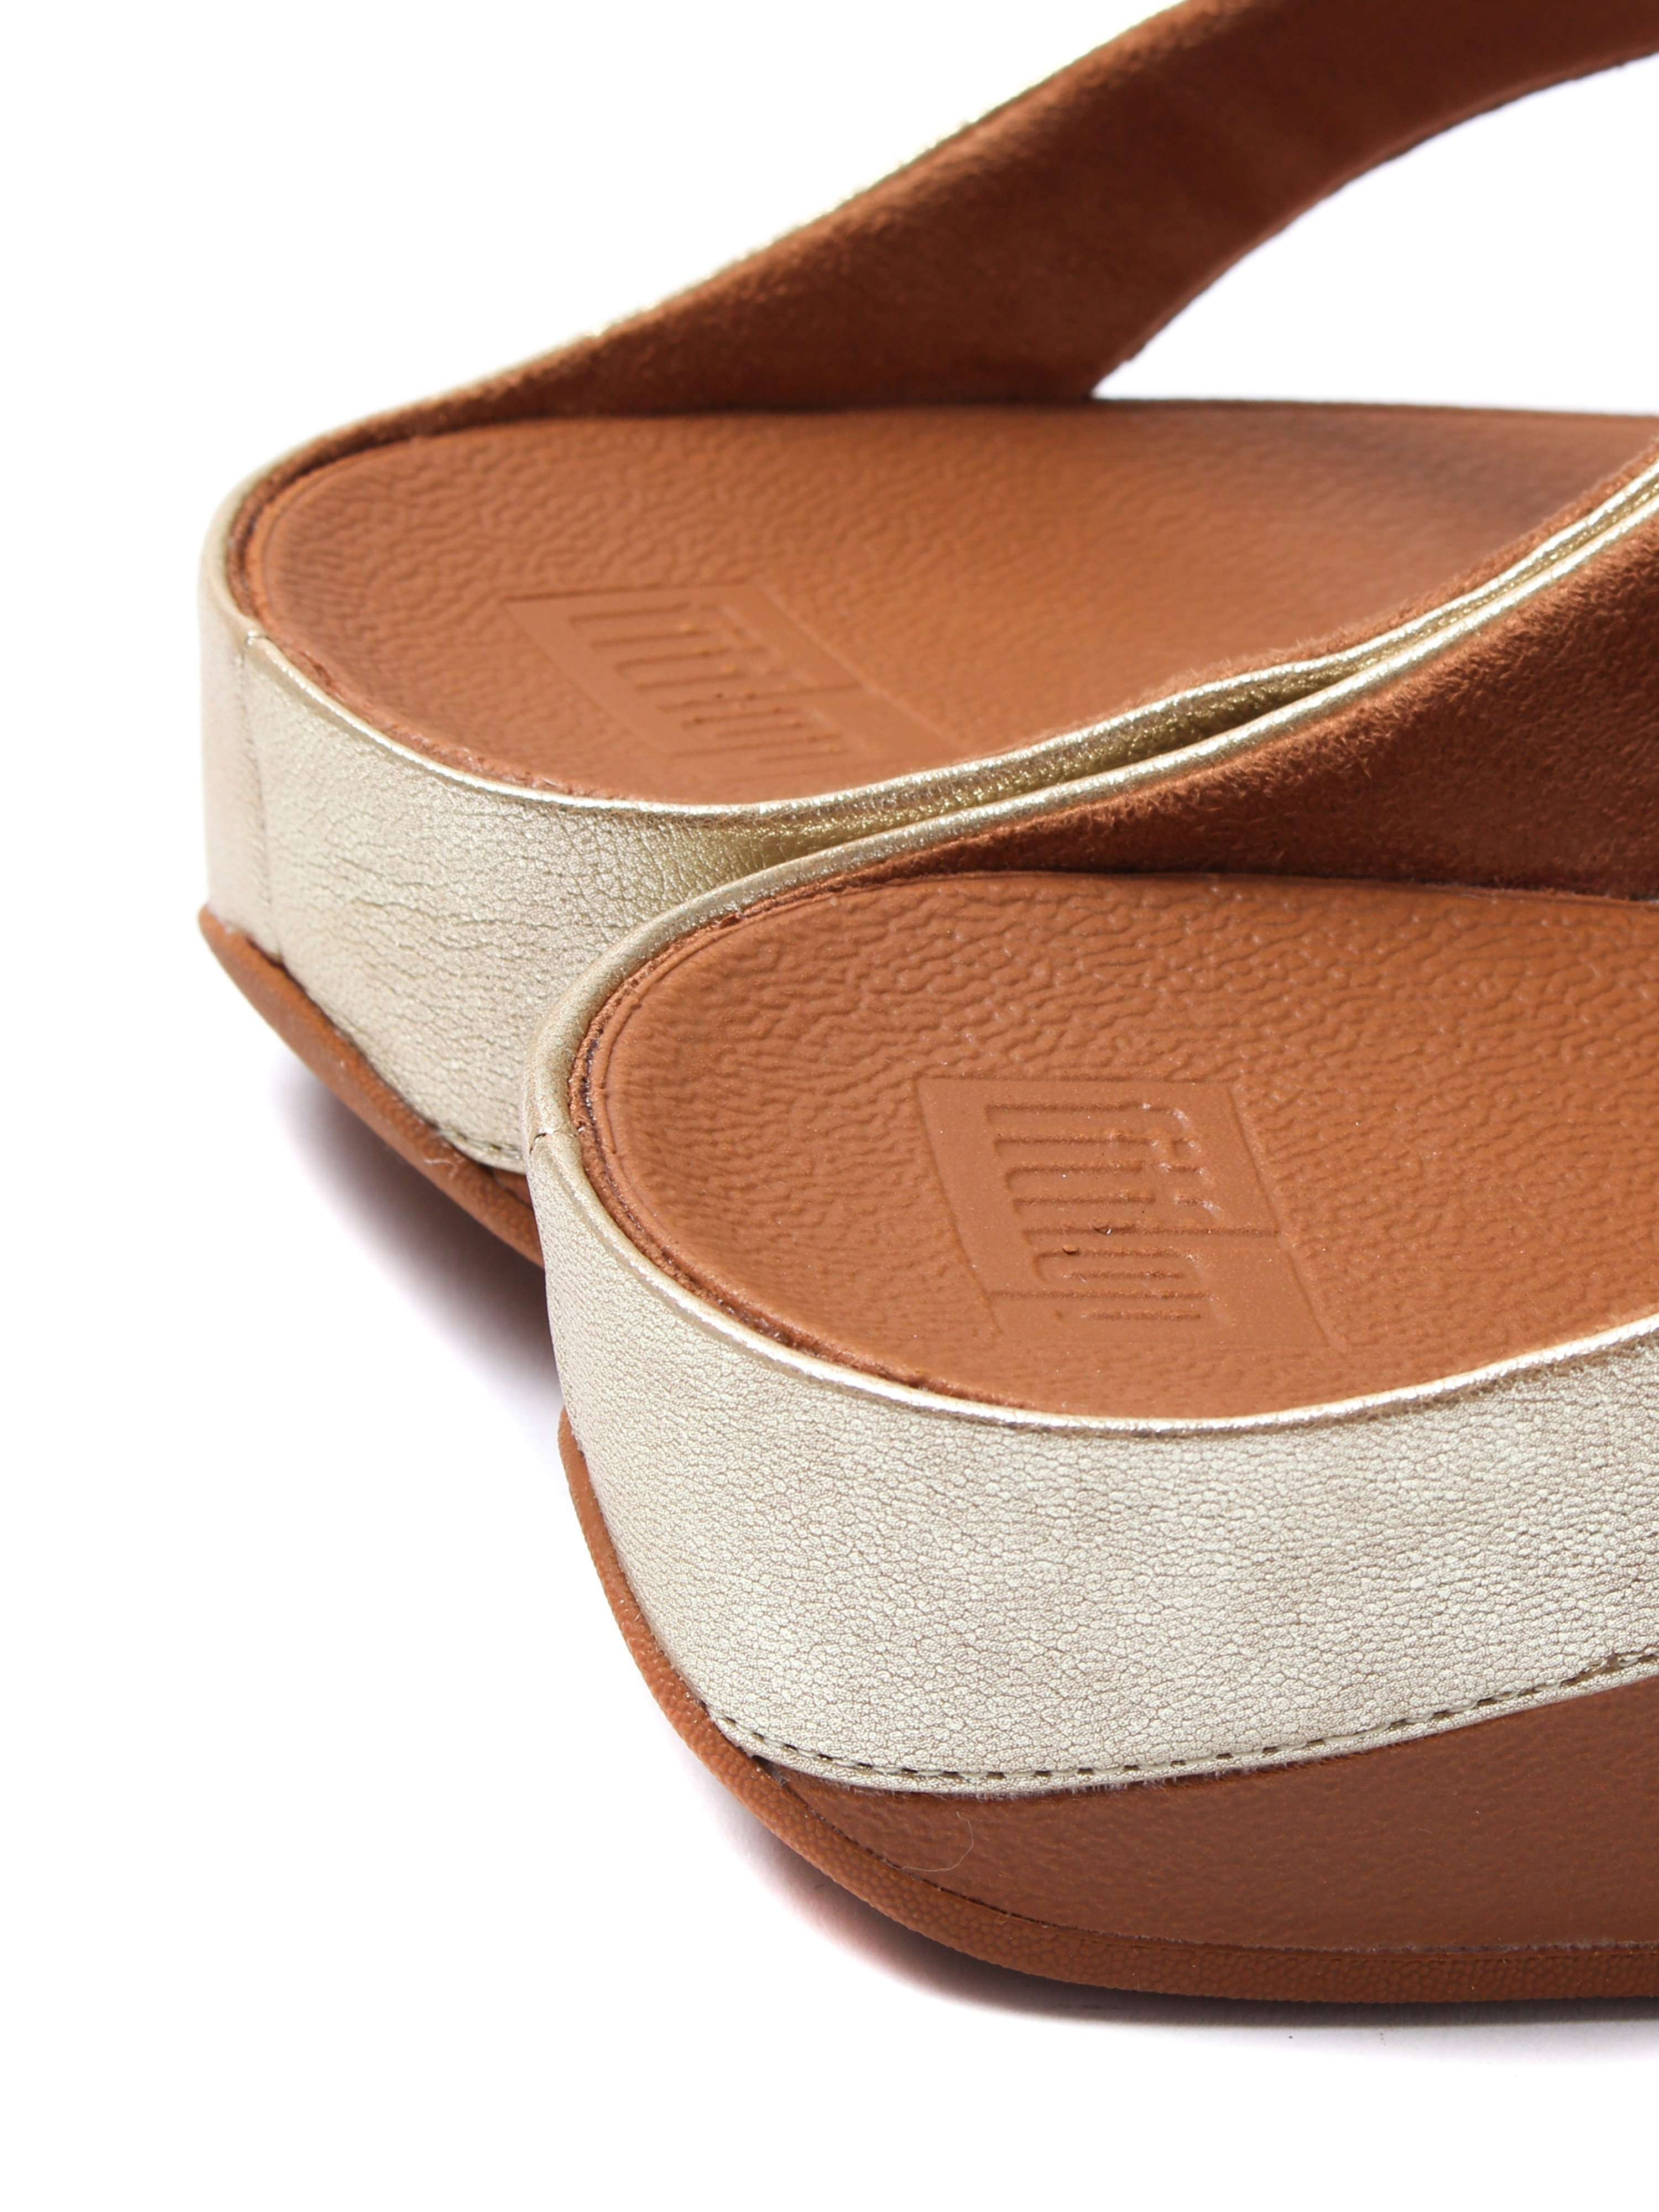 FitFlop Women's Roka Toe Thong Sandals - Gold Leather